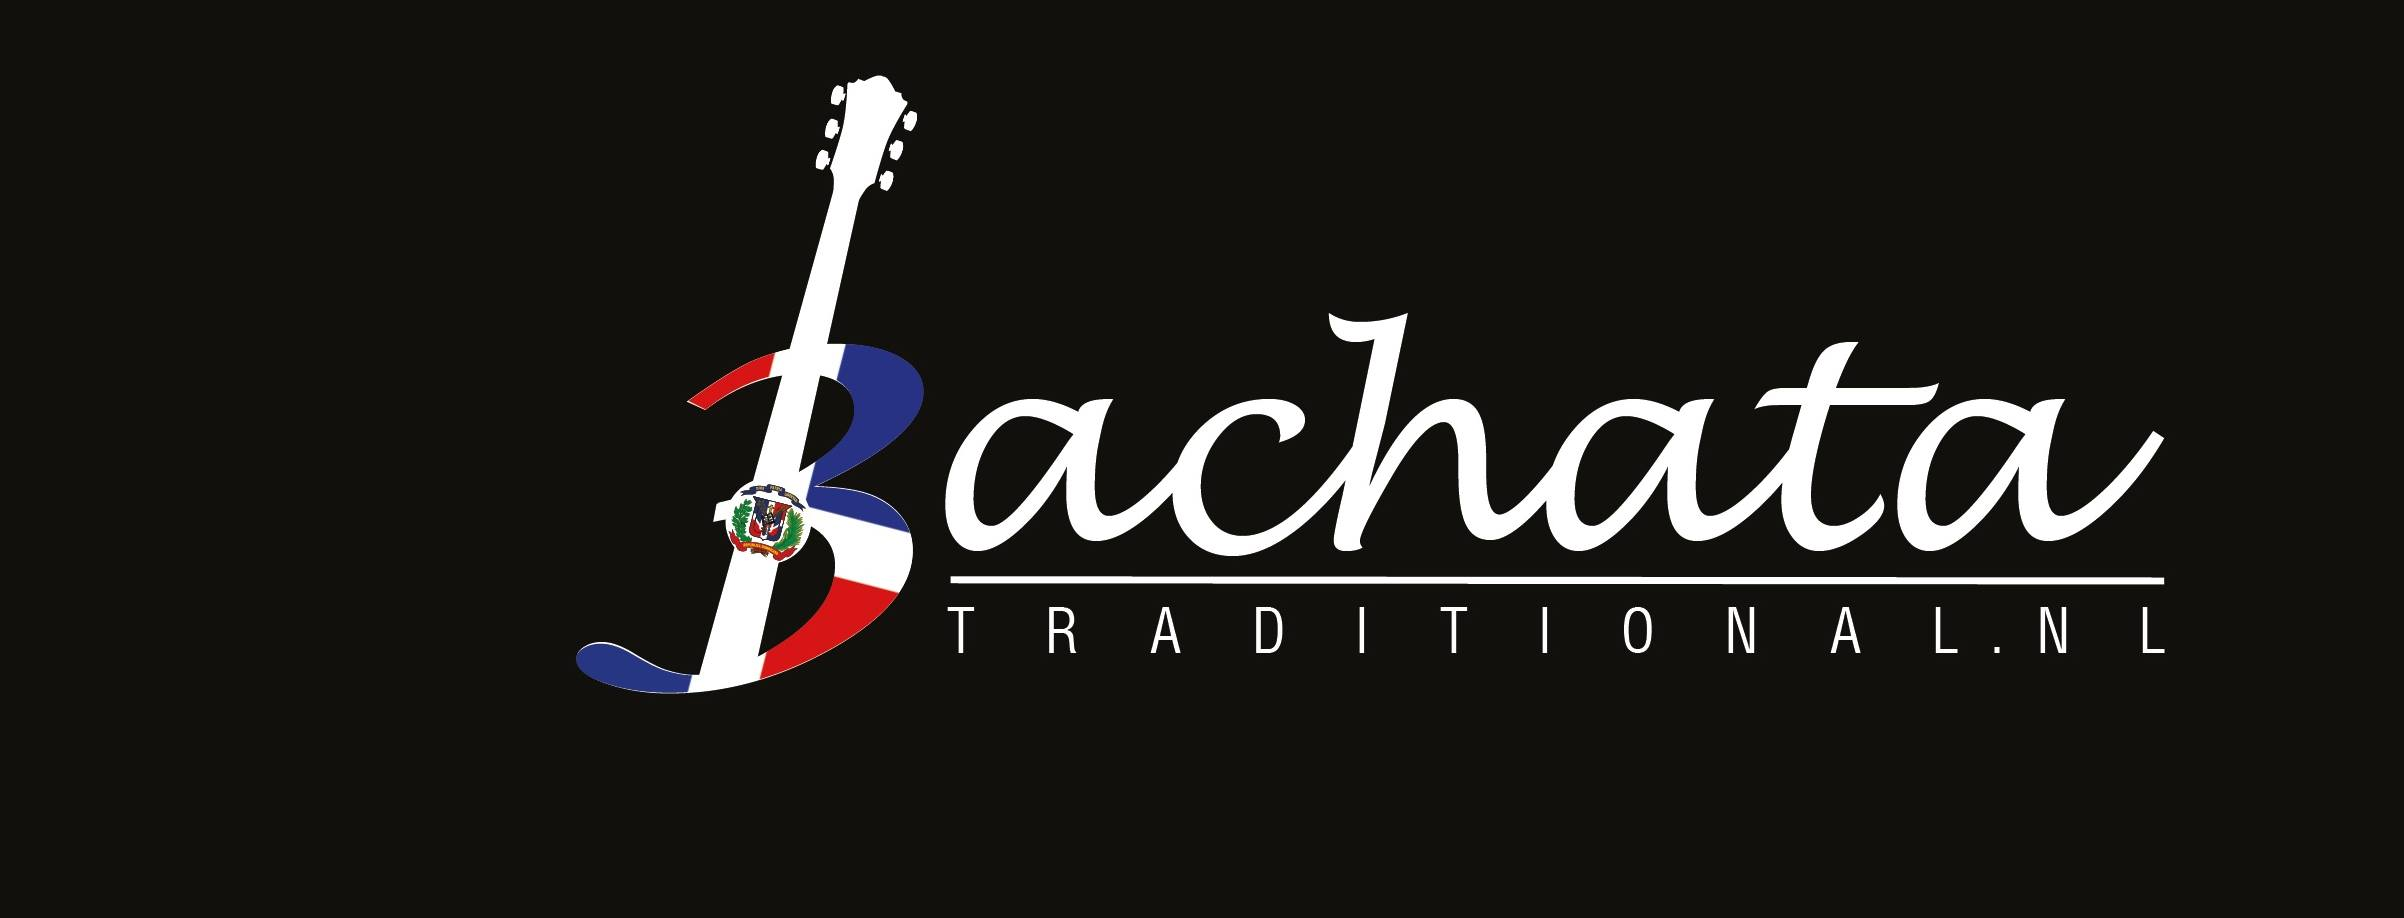 bachata traditional